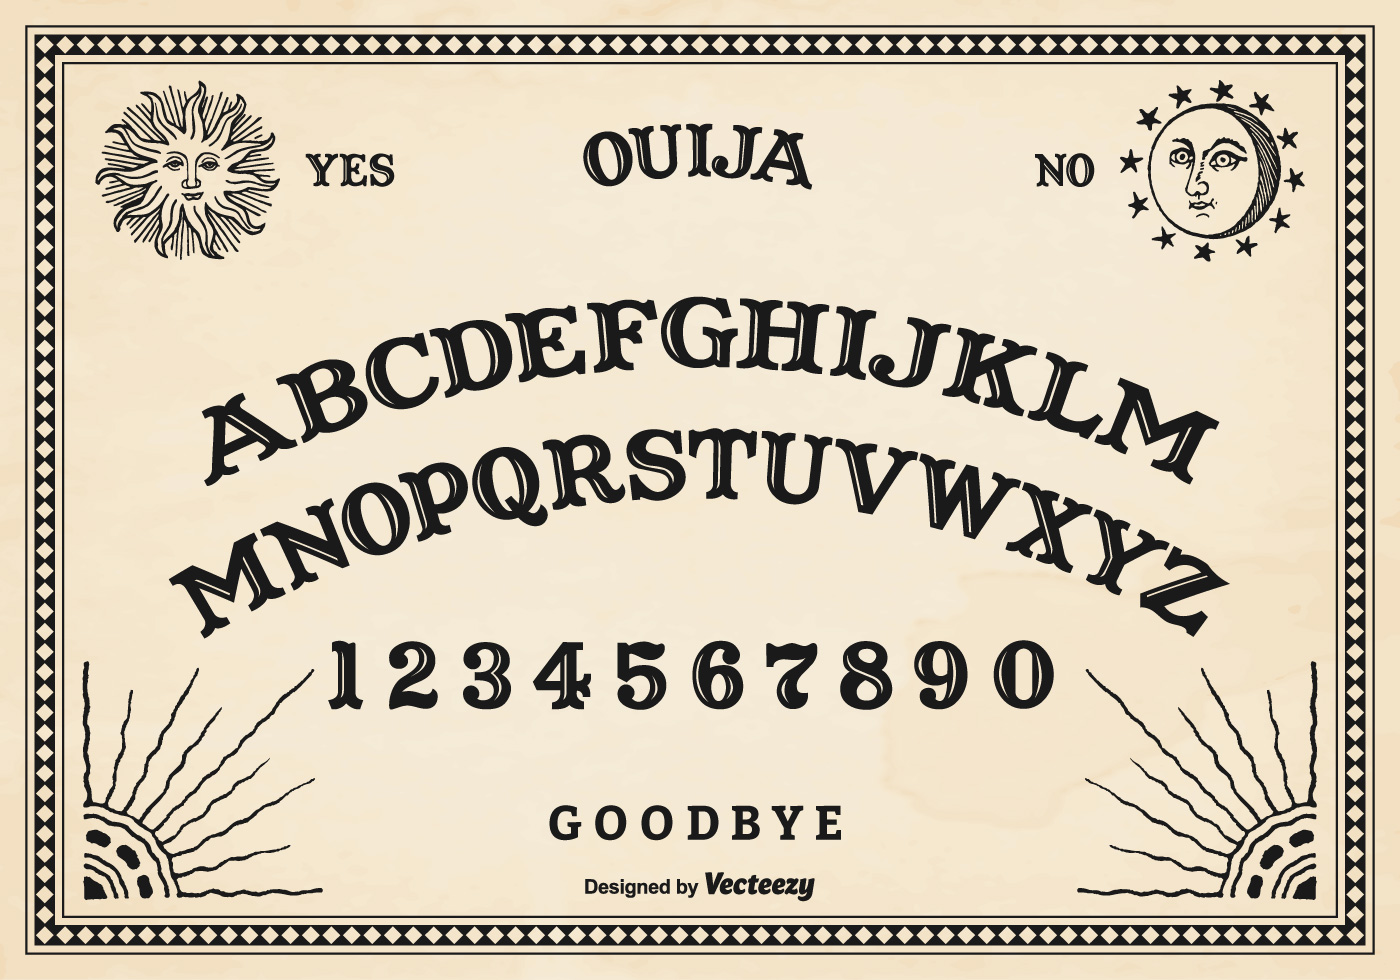 Universal image intended for printable ouija board template